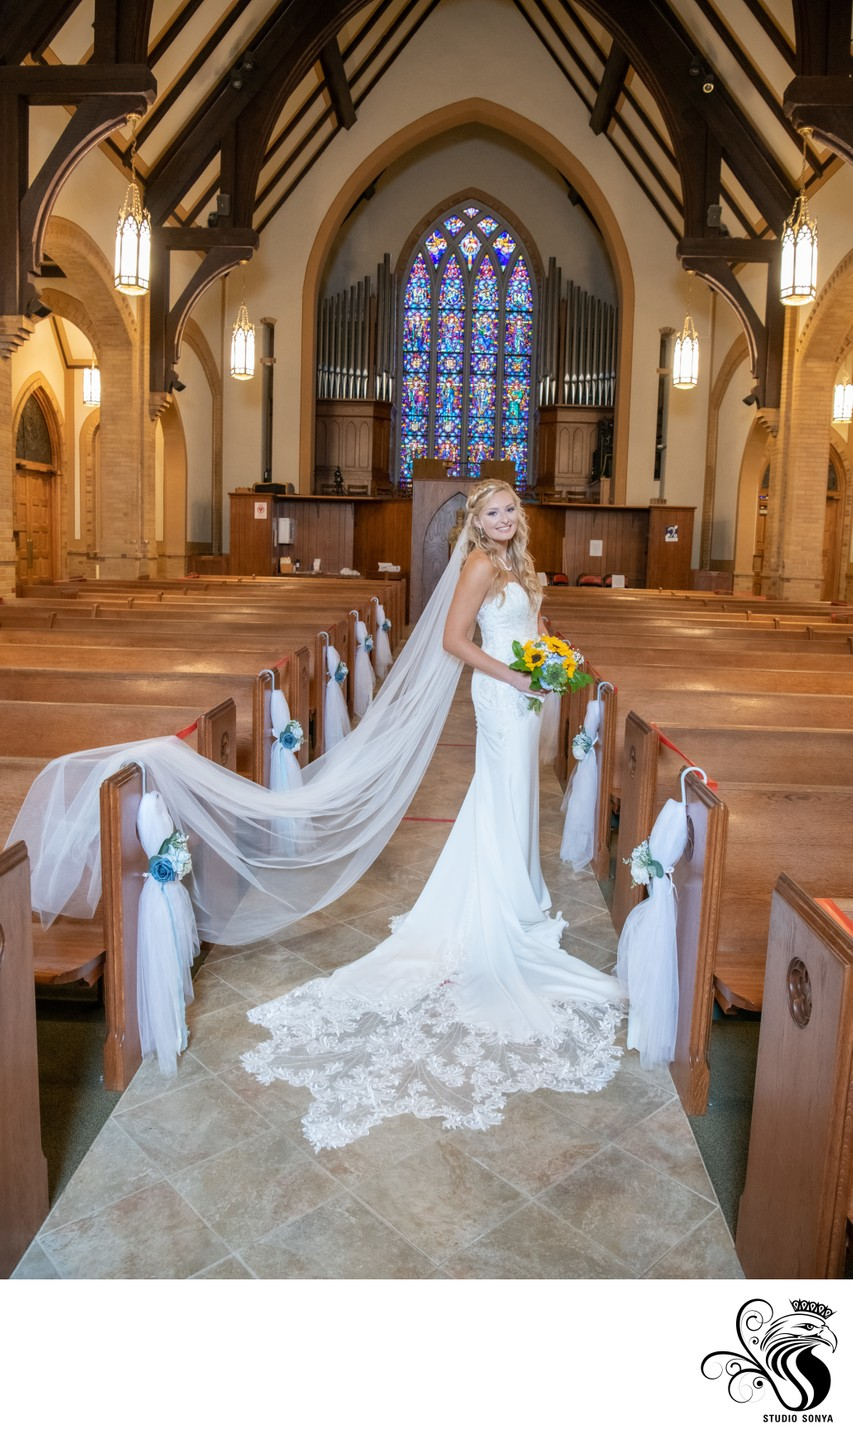 Bride in Catholic Church